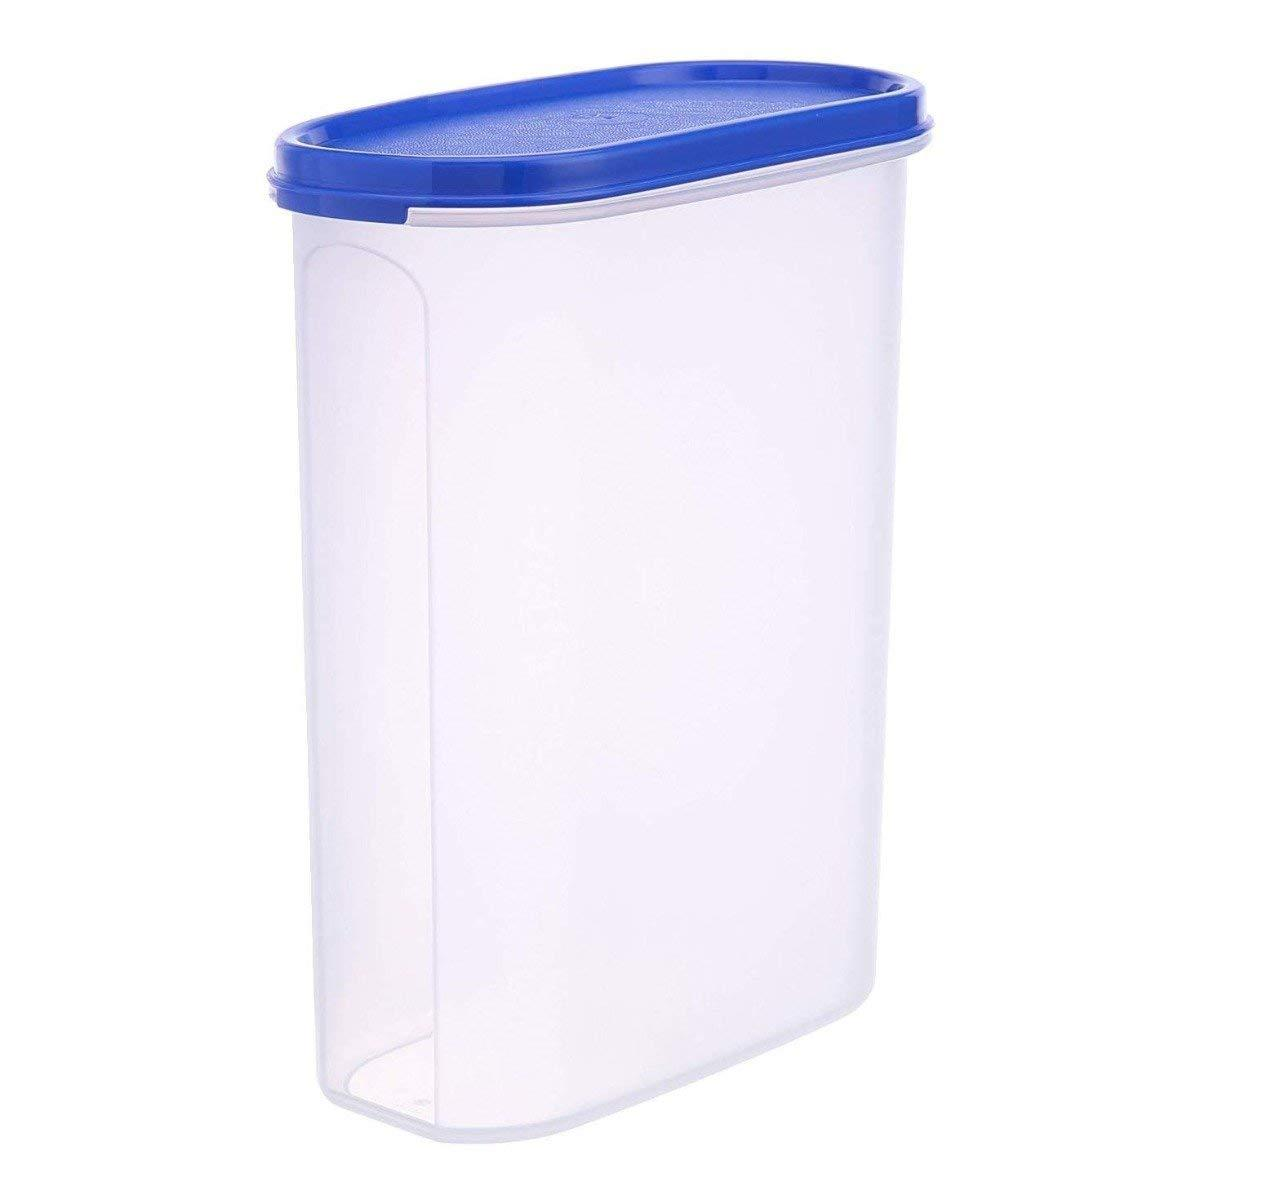 1 Pcs Modular 2500 ML Container